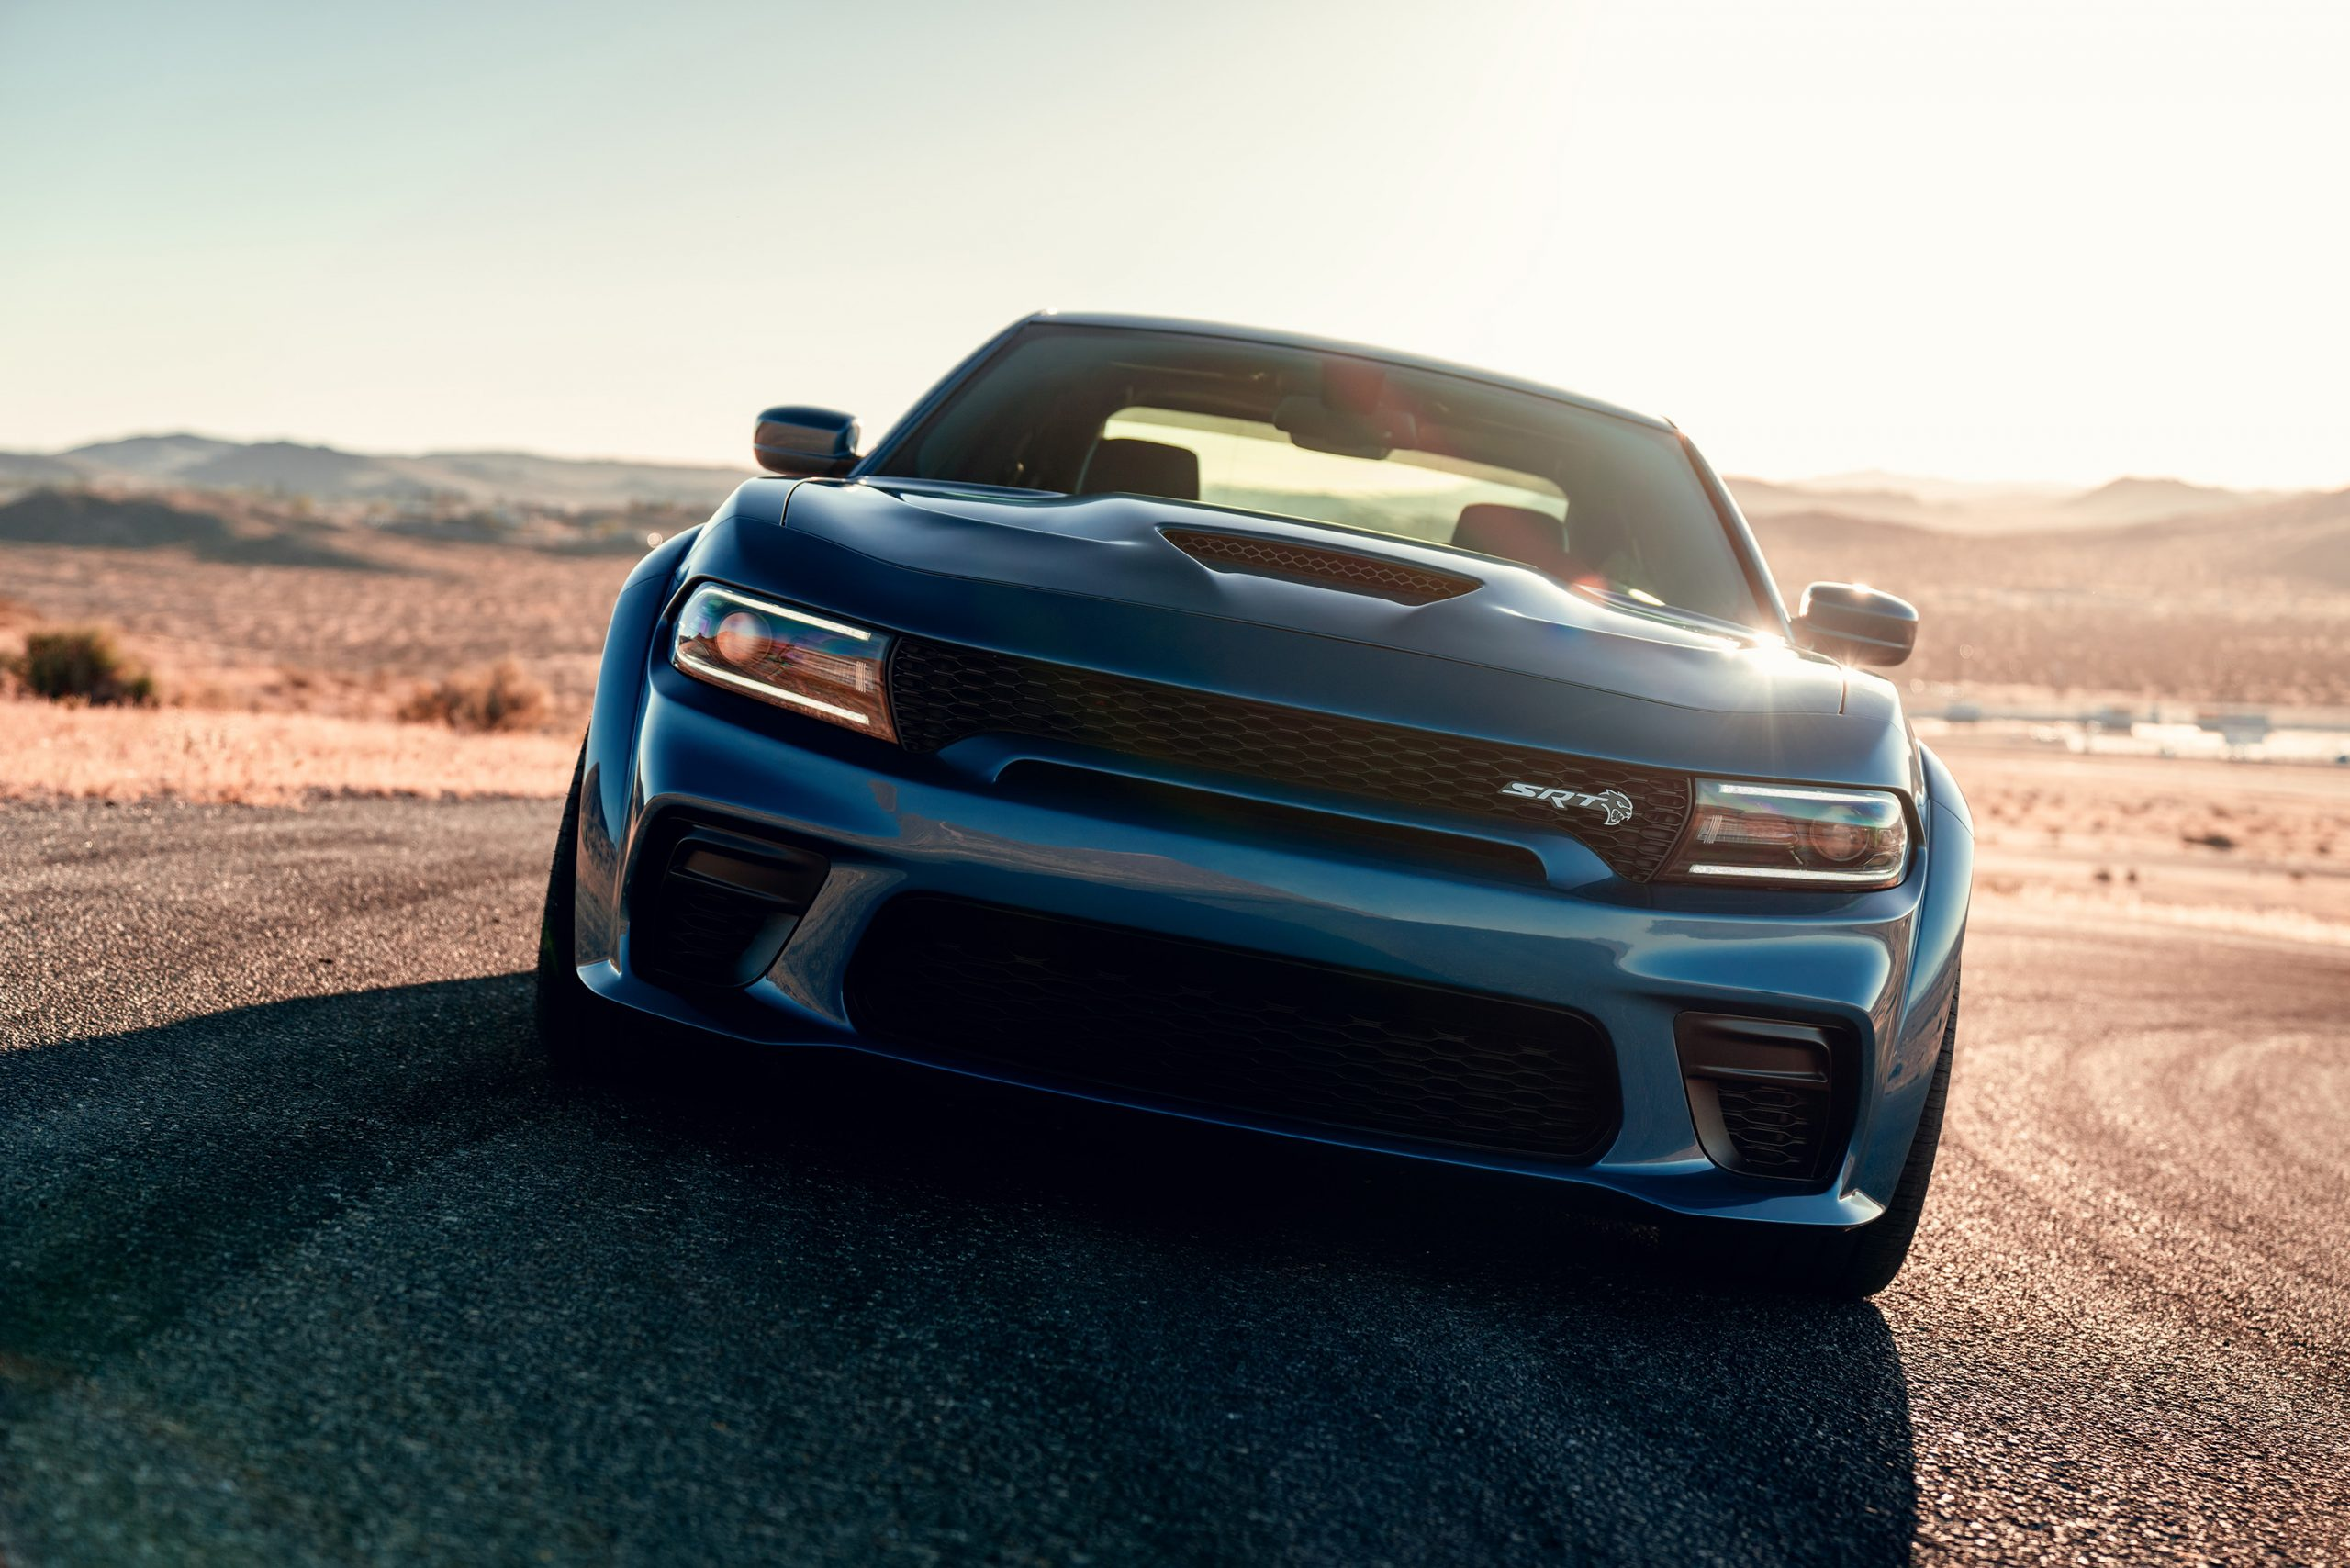 Fastest Four-Door Cars - 2021 Dodge Charger SRT Hellcat Widebody